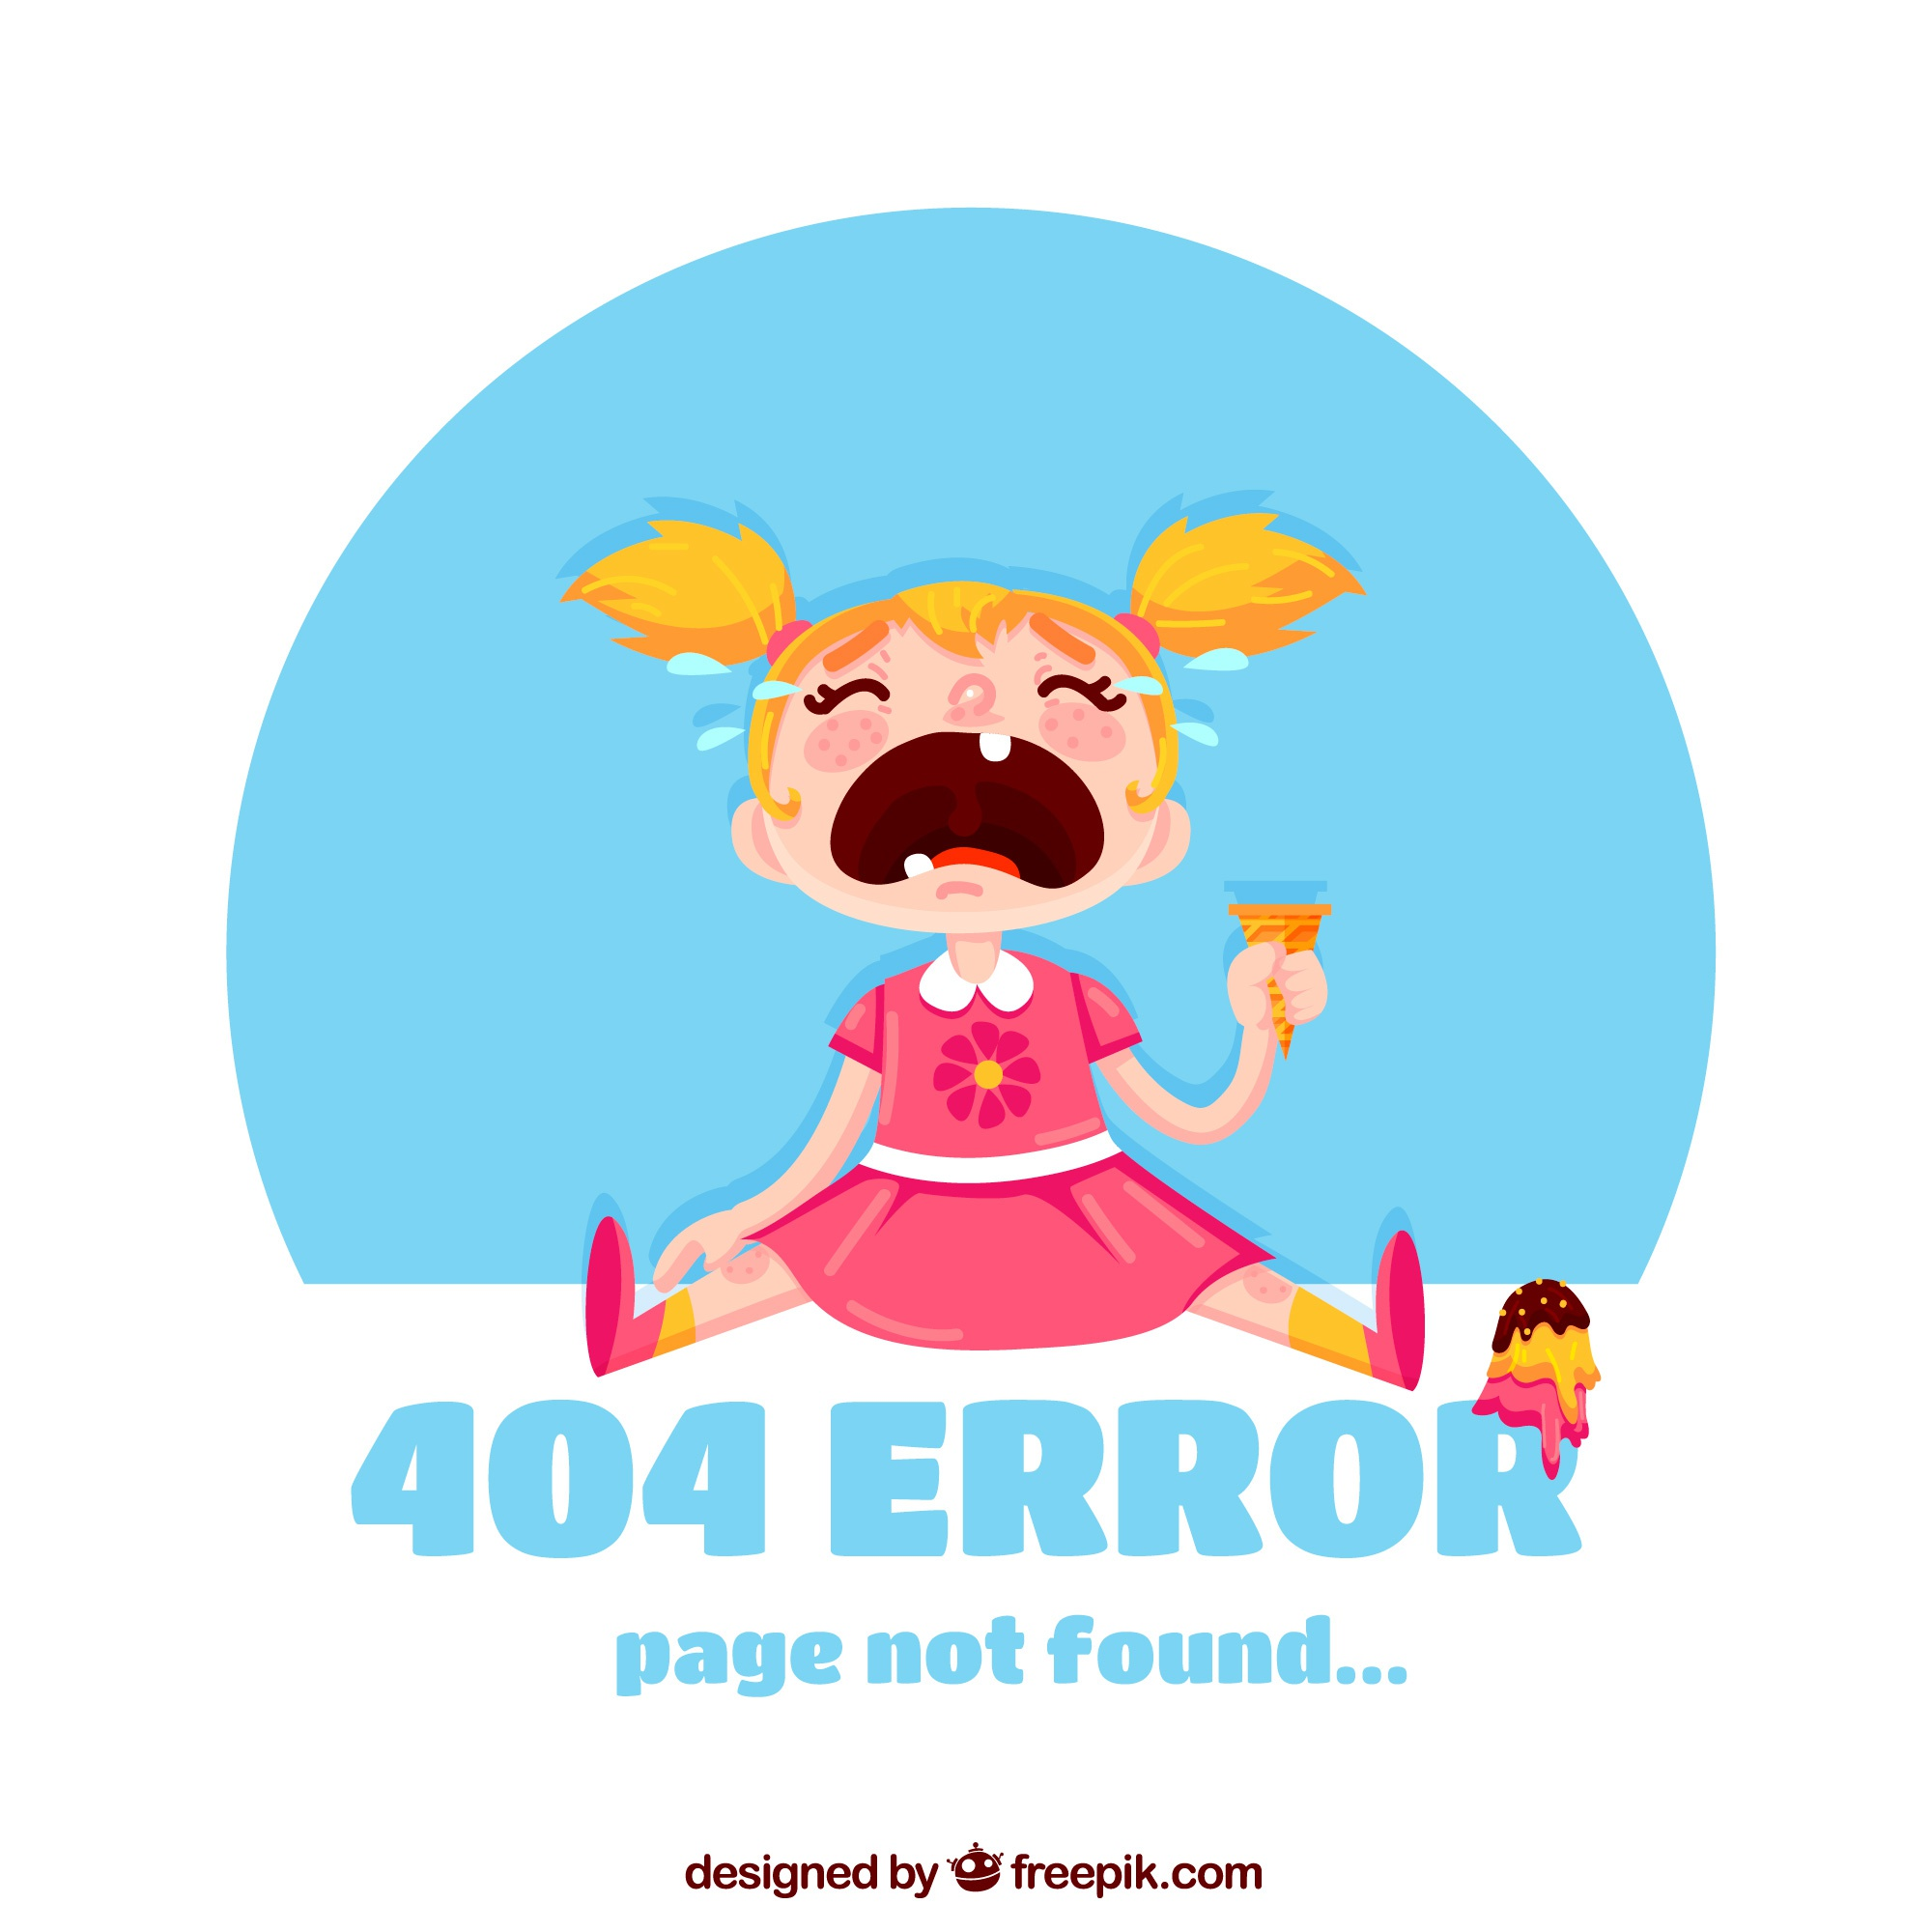 404 error background with girl crying